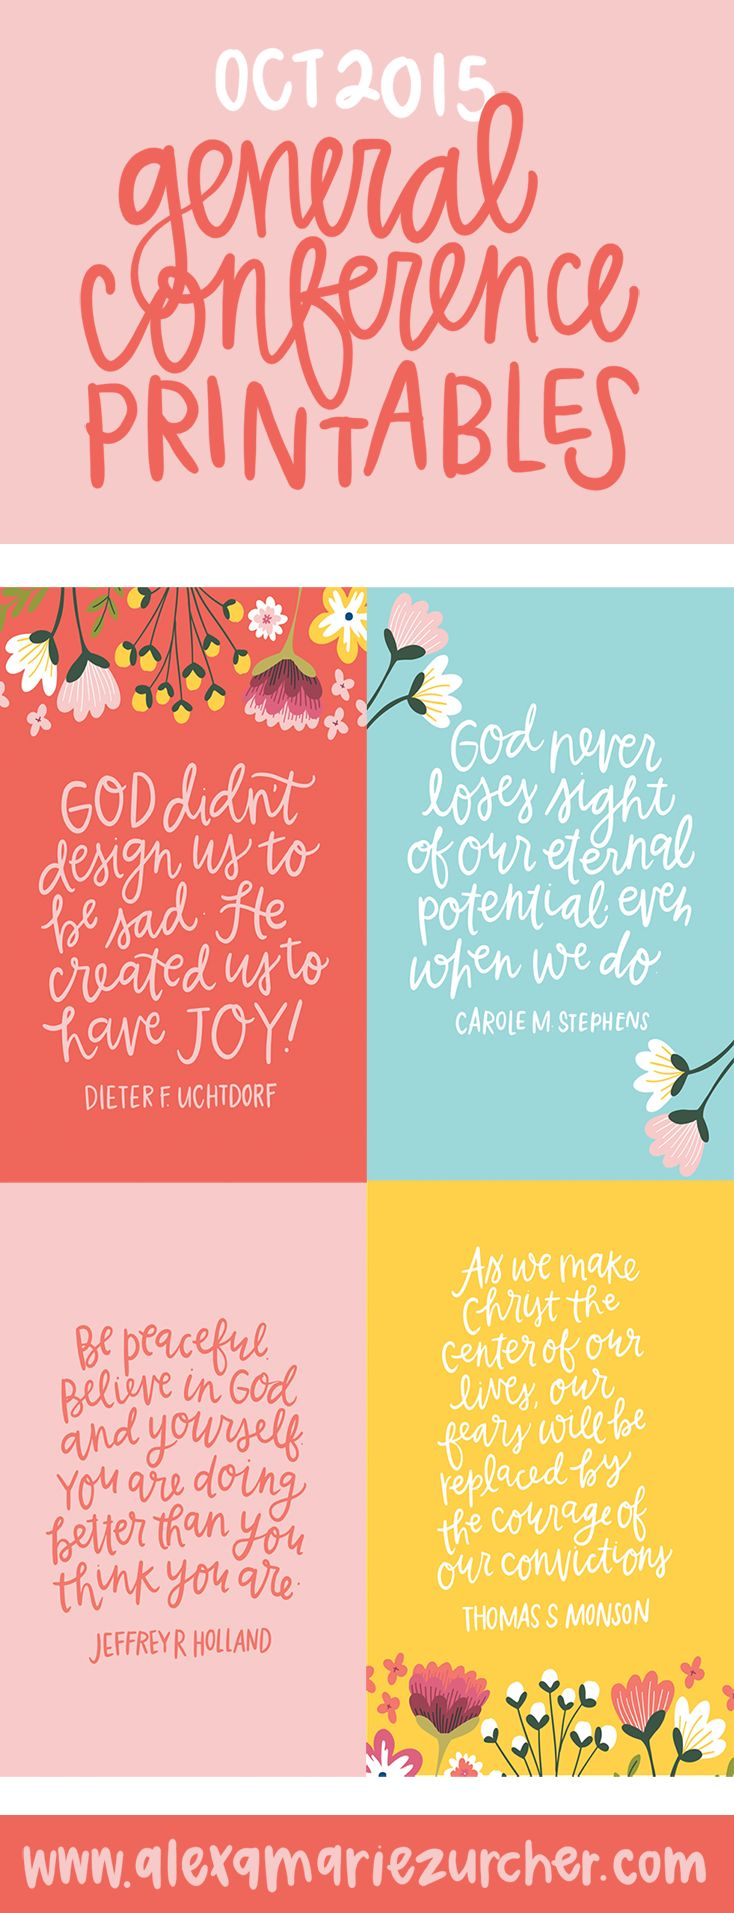 Free Hand Lettered General Conference Printables #ldsconf #womensmeeting